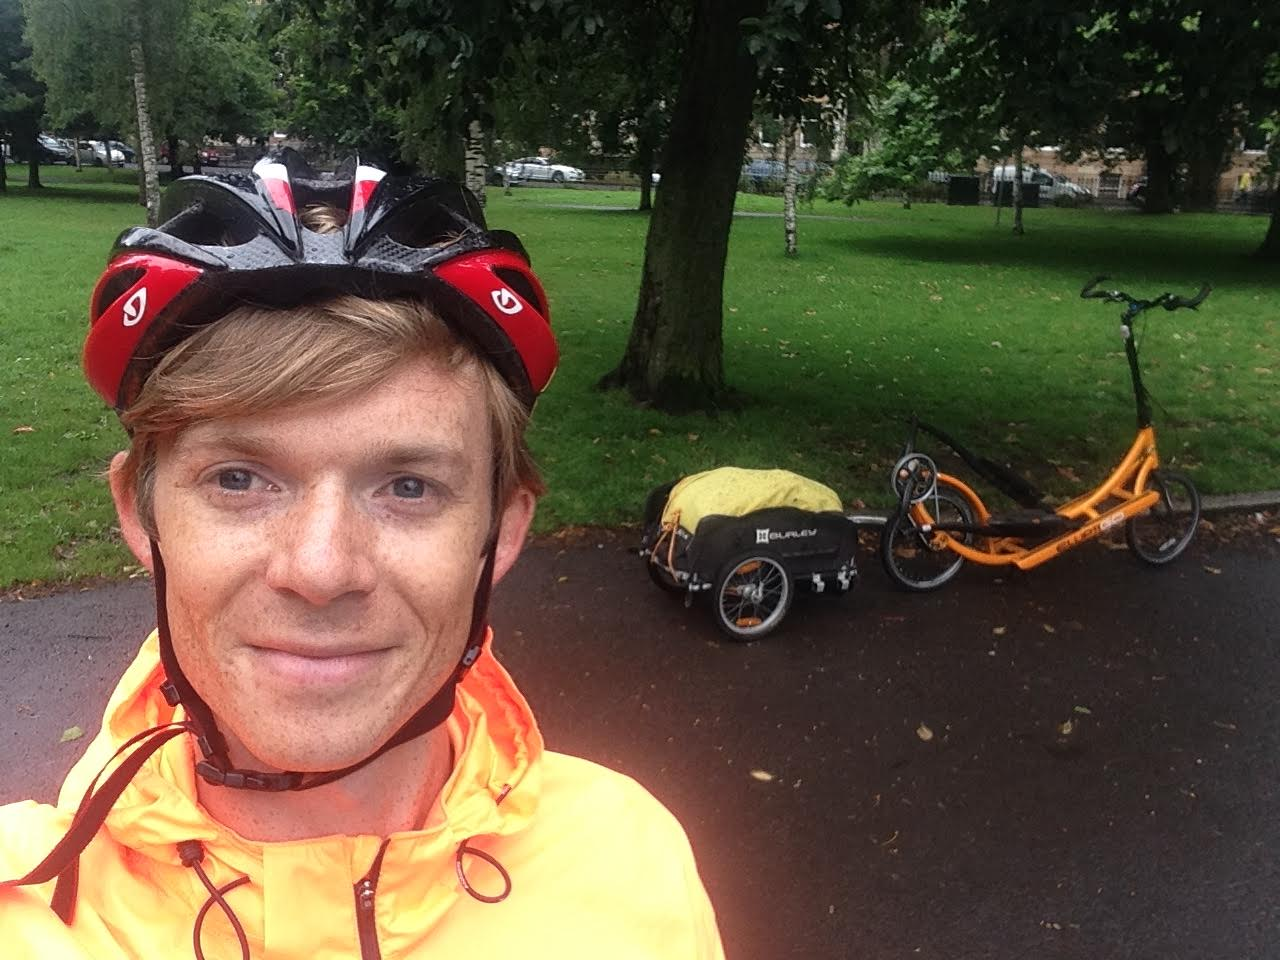 Read more about Greg's swift 450 mile romp on an elliptical trainer with wheels  in this blog.